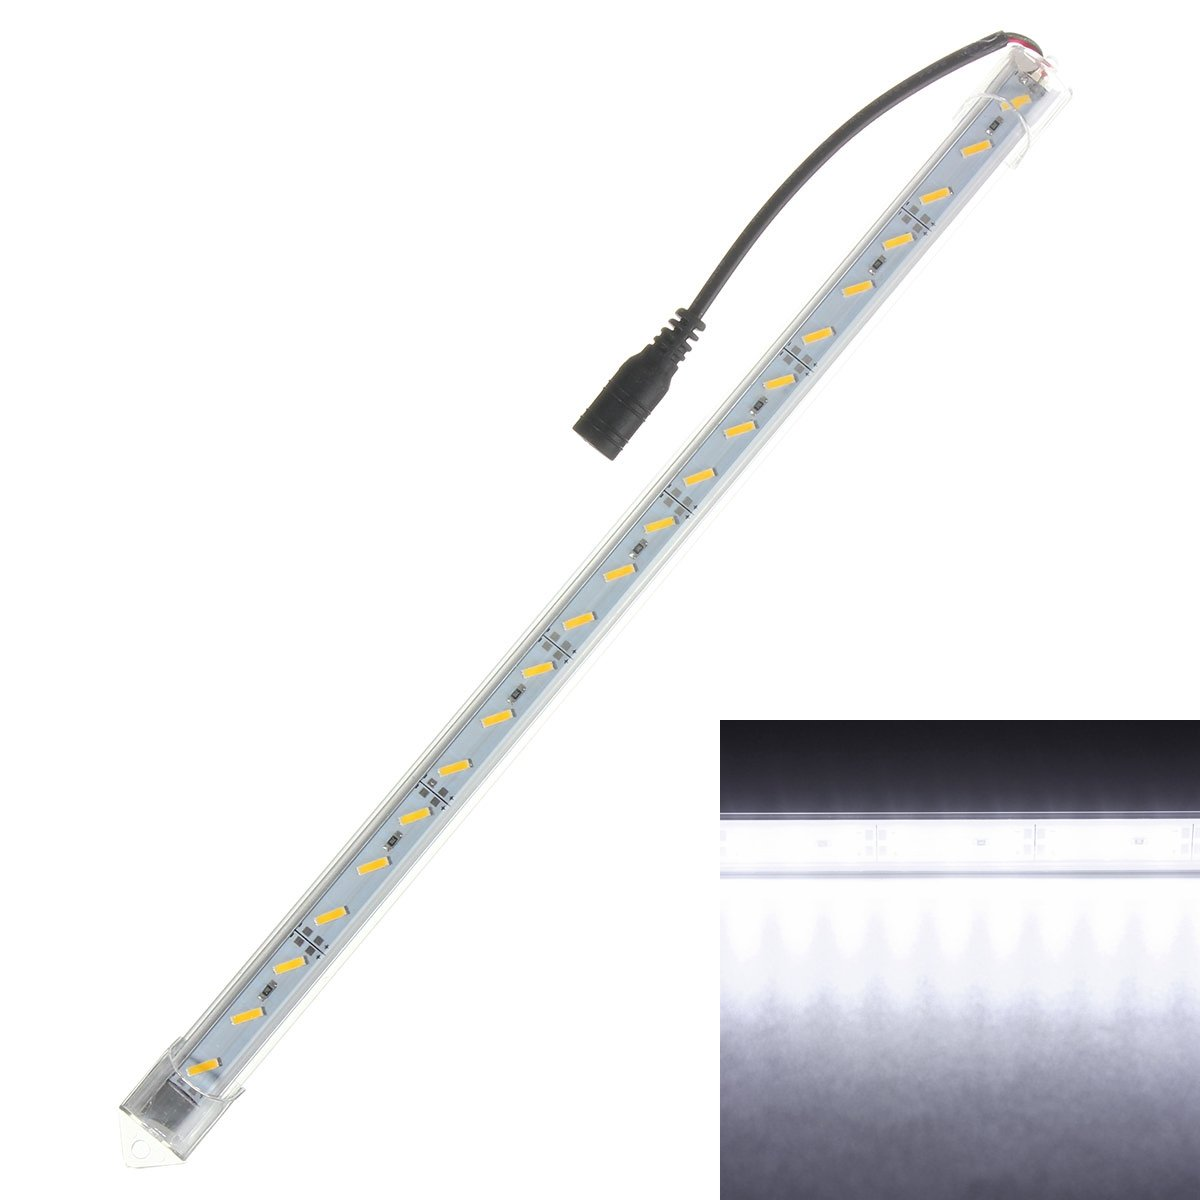 Uncase Clean Led Aluminum Strip Light Led Rigid Strip - 4 30cm Dc12v 7020 21smd Led Aluminum Alloy Shell Cabinet Strip Light - Pillage Bioluminescent Plunder Unclouded Ignitor - 1PCs